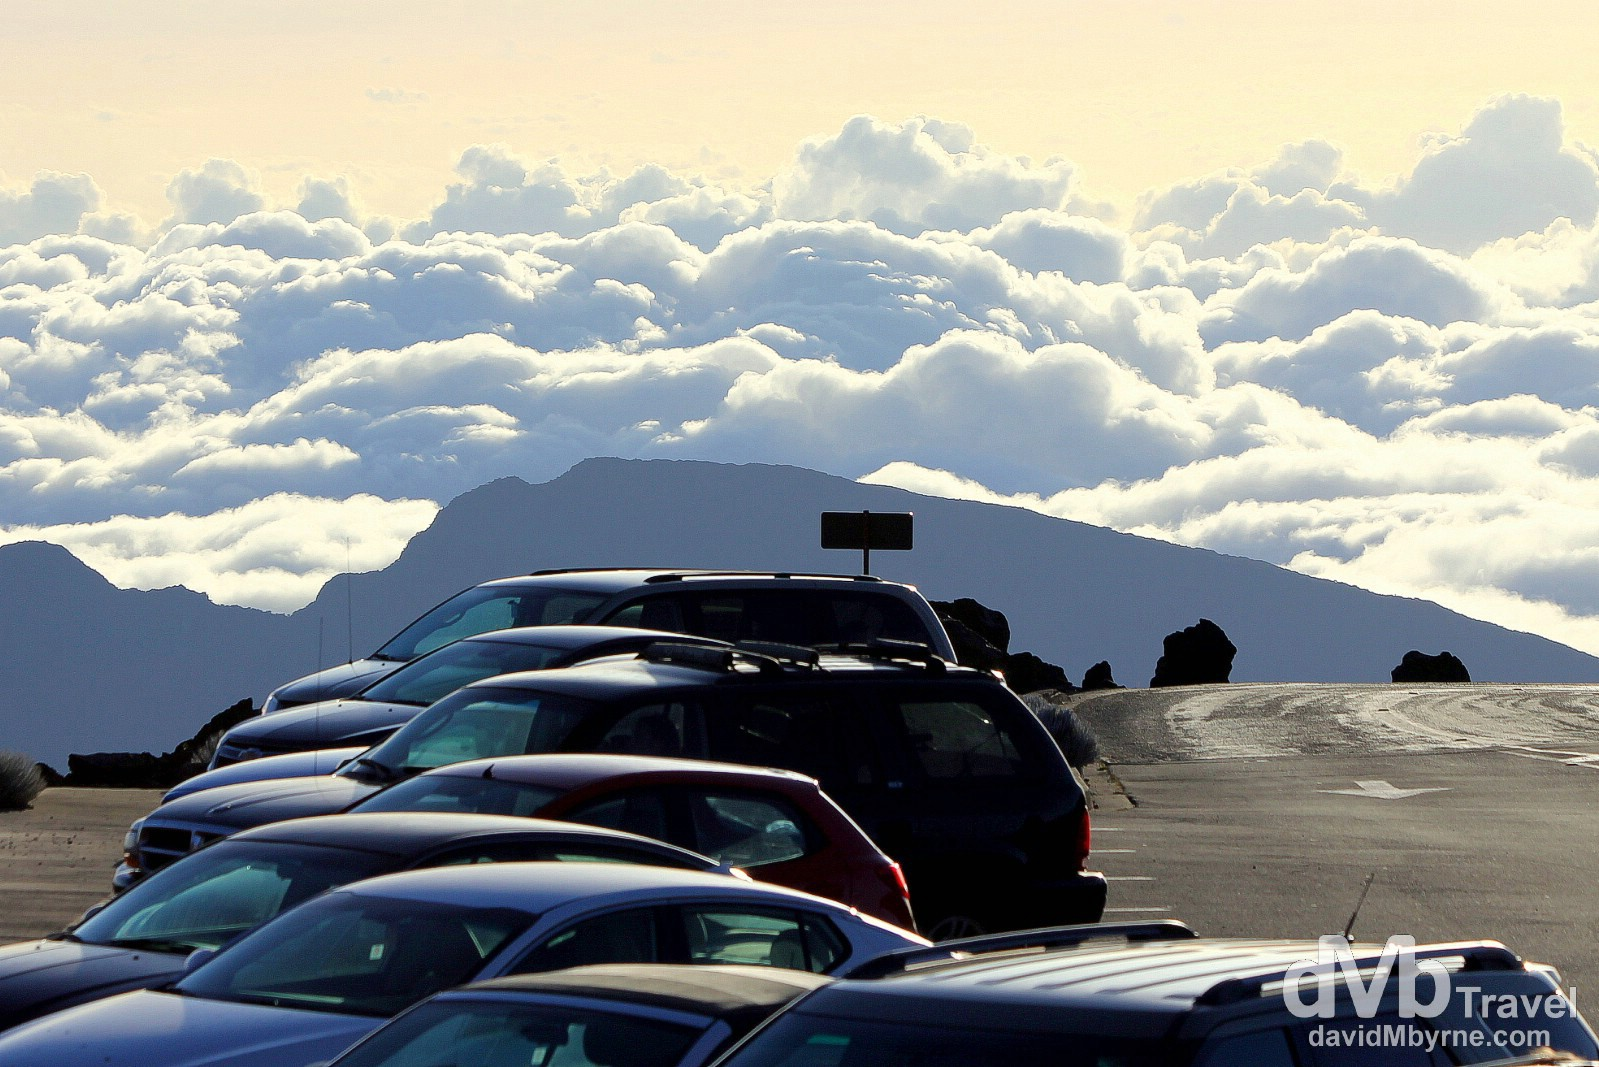 Haleakala is the 10,023 ft-high dormant volcano that dominates the east of Maui, accounting for the bulk of Maui's landmass. Driving up here for sunrise is one of the must-do activities for any visitor - the drive itself holds the world record for the highest elevation gain, 10,000ft+, in the shortage distance driven, 36m/58km. This picture, of cars parked at the summit, was taken shortly after sunrise. Haleakala Crater, Maui, Hawaii, USA. March 6th 2013.